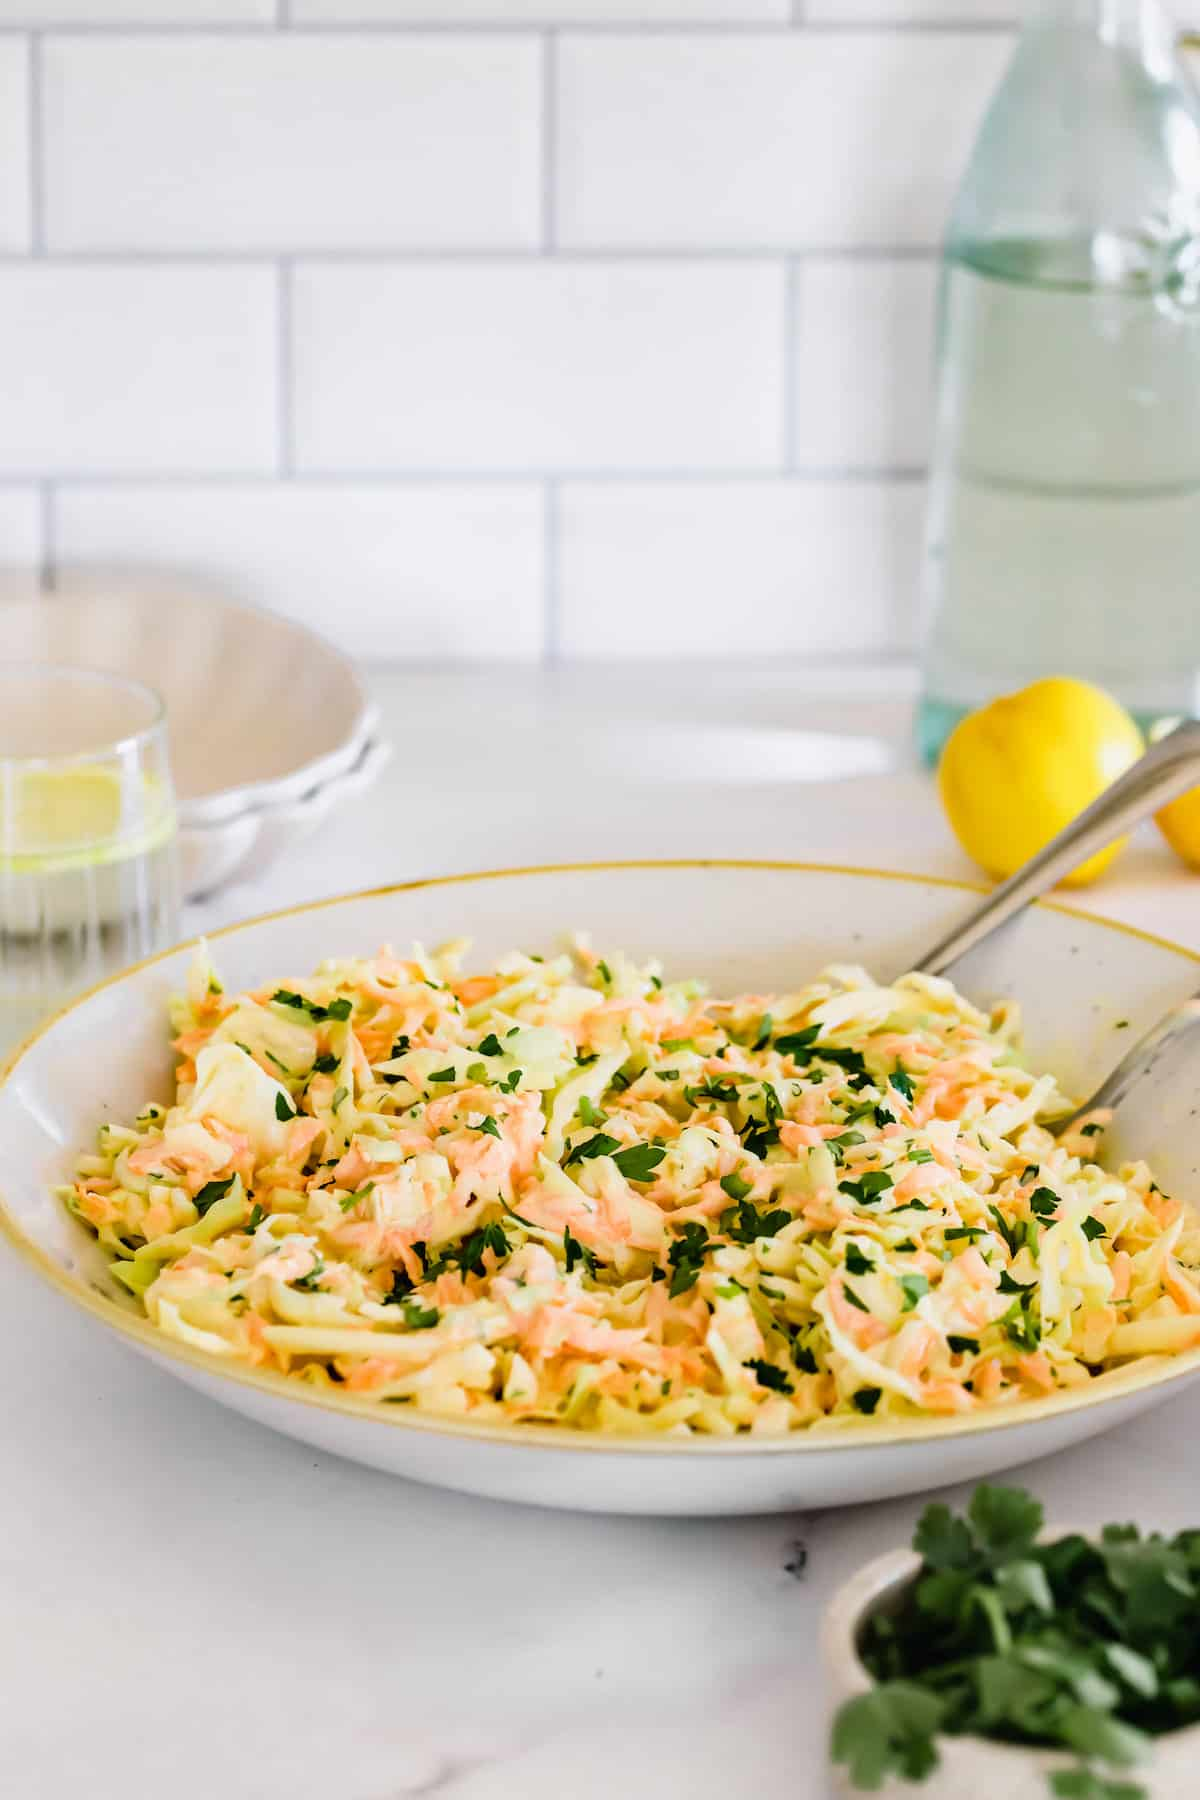 A Plate of Coleslaw on the Counter with a Bottle of Water Behind It